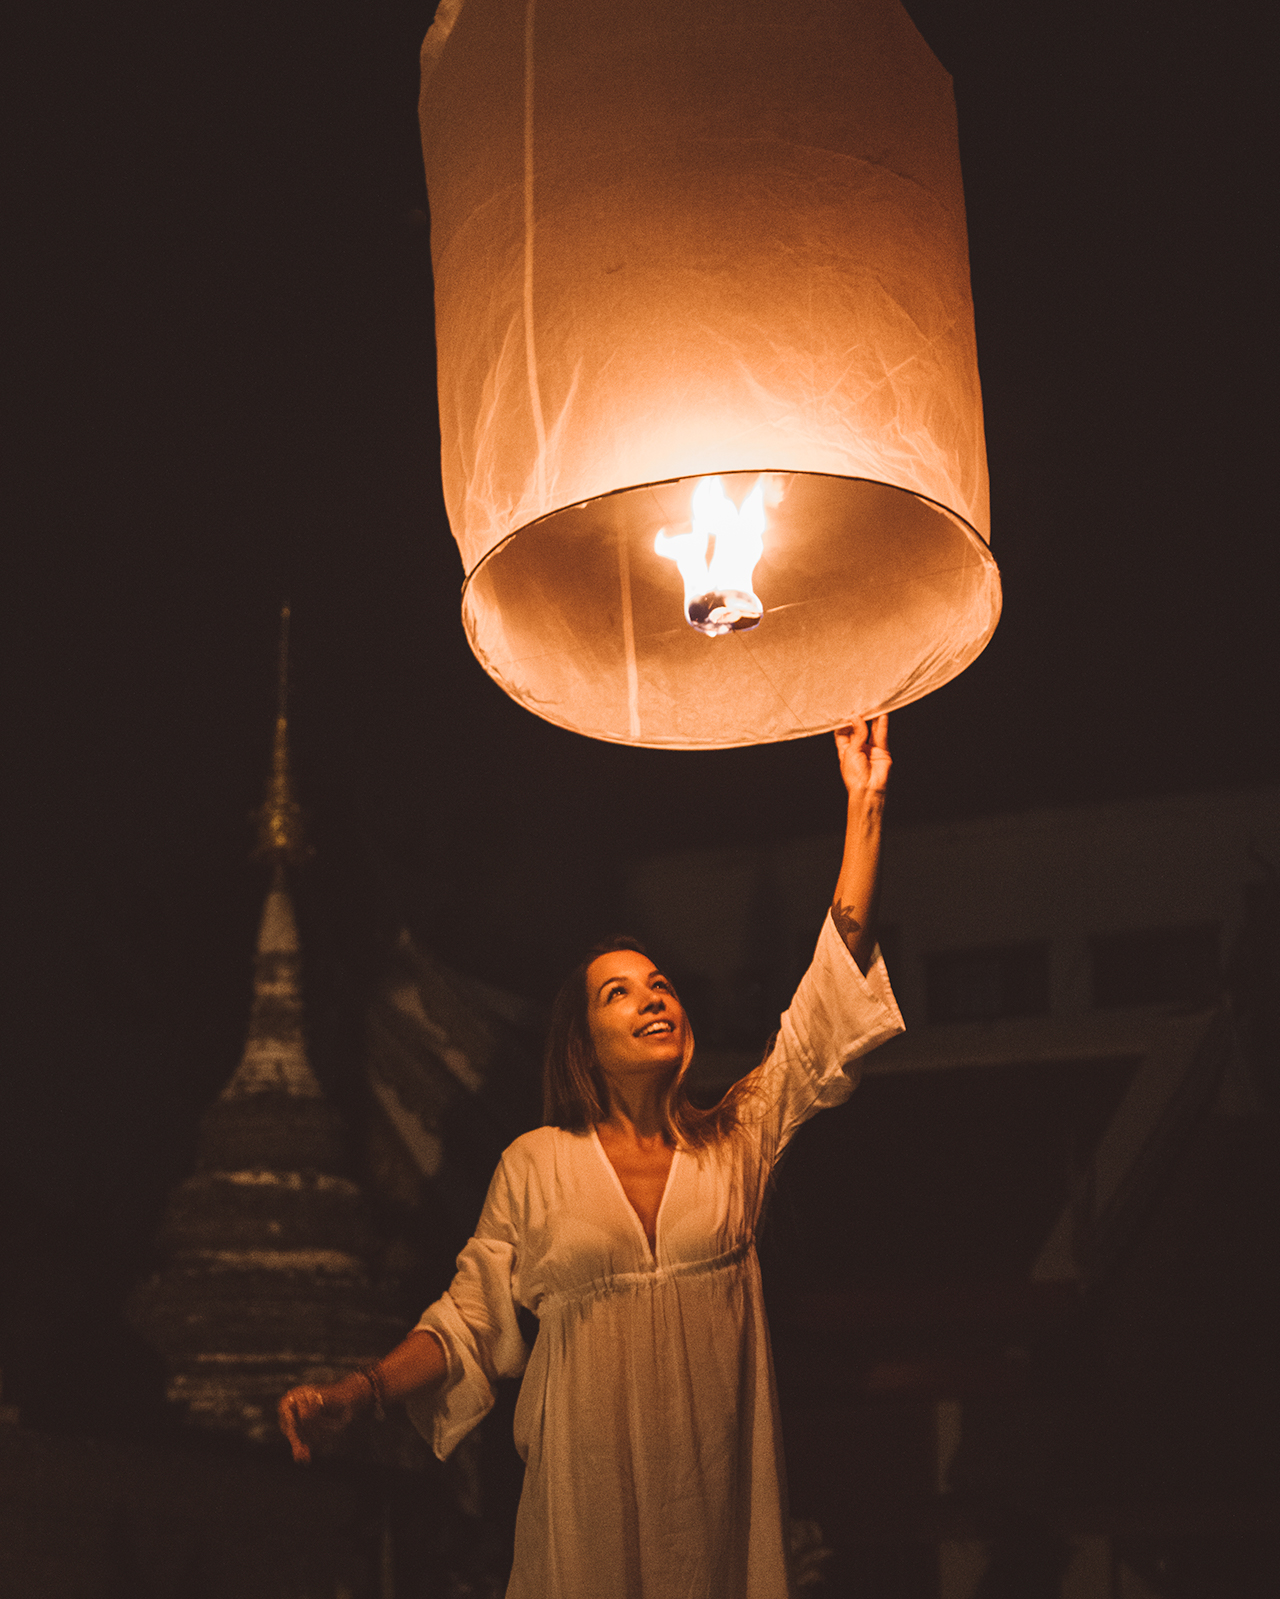 lantern festival chiang mai travel guide all you need to know about nights november beautiful thailand asia culture tradition